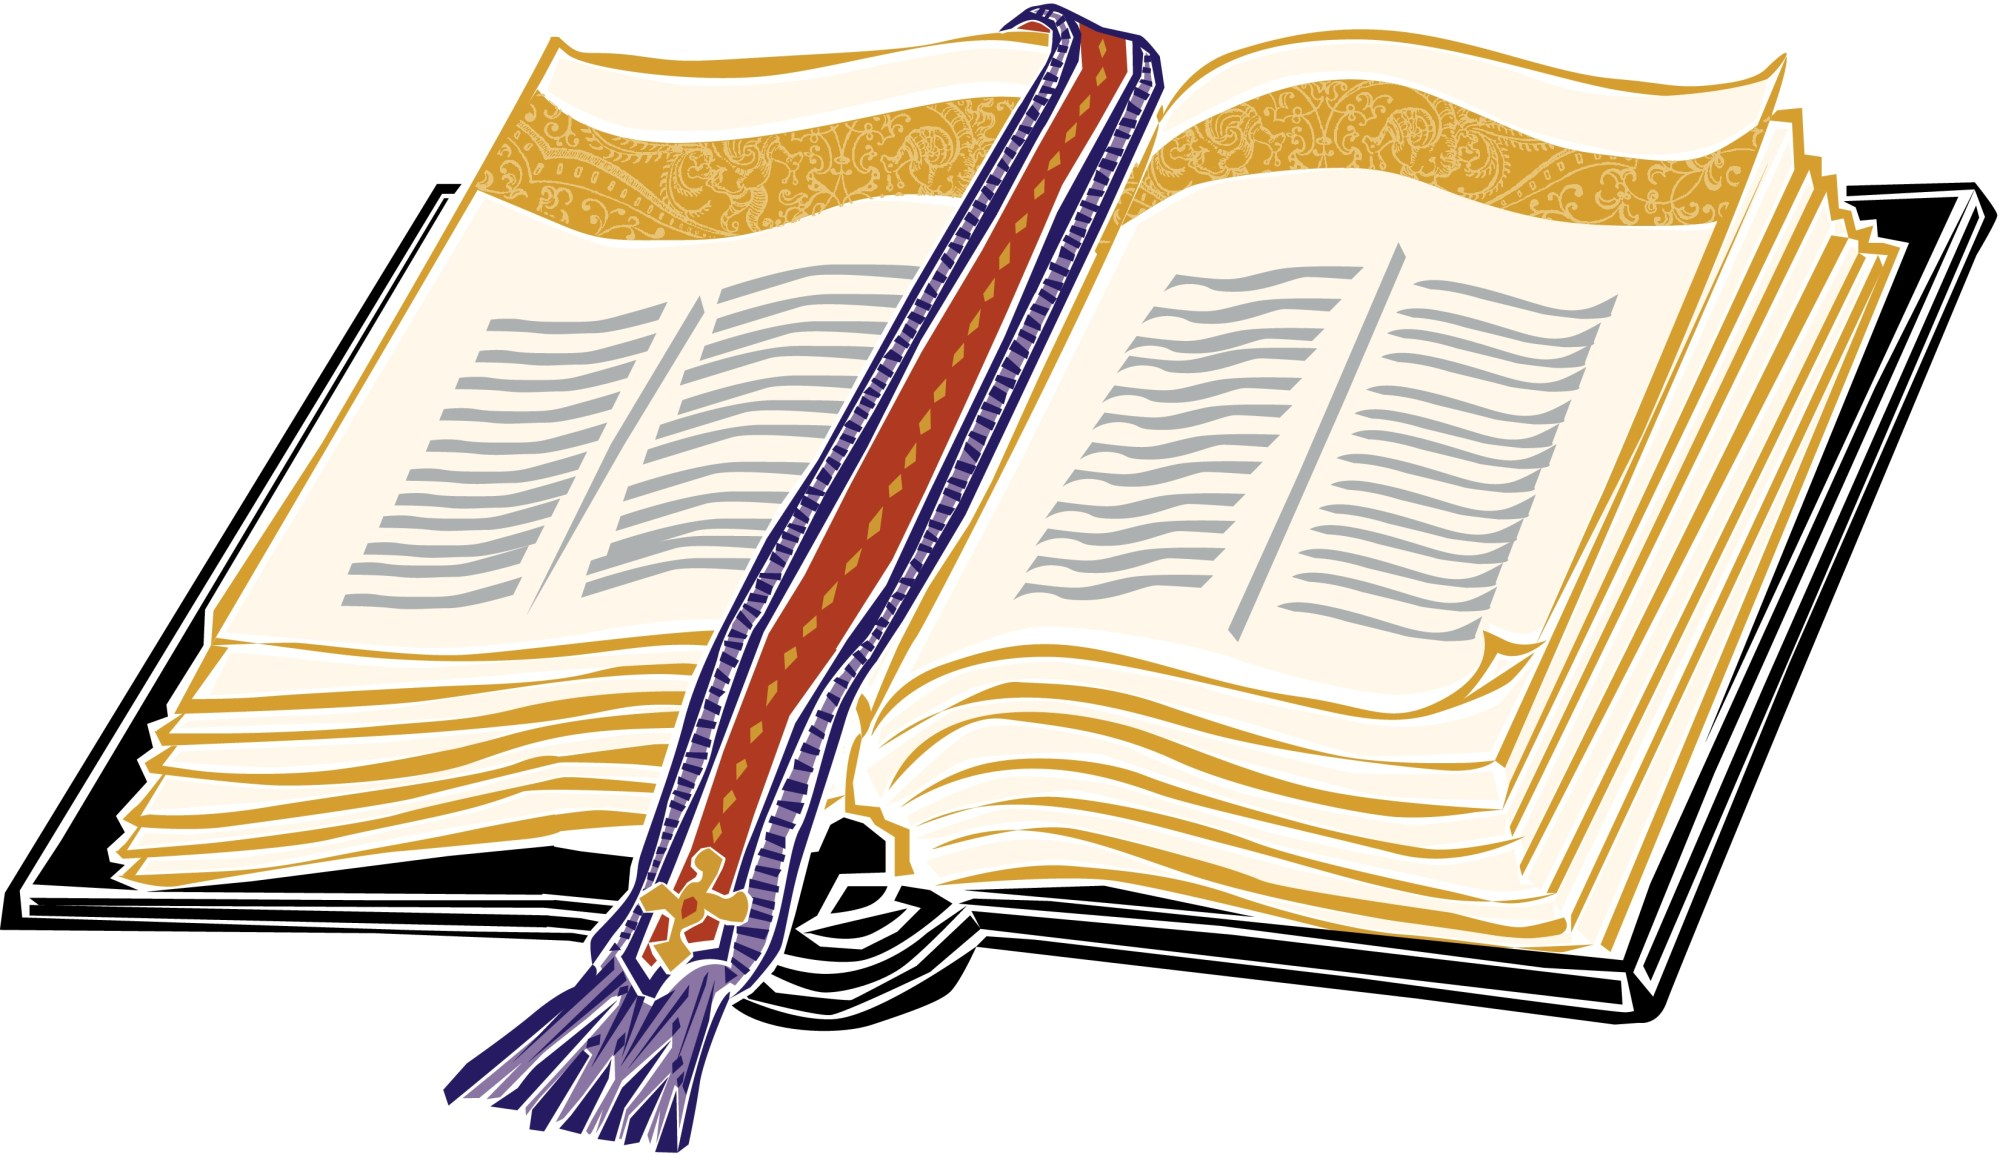 hight resolution of images for holy bible with cross clipart